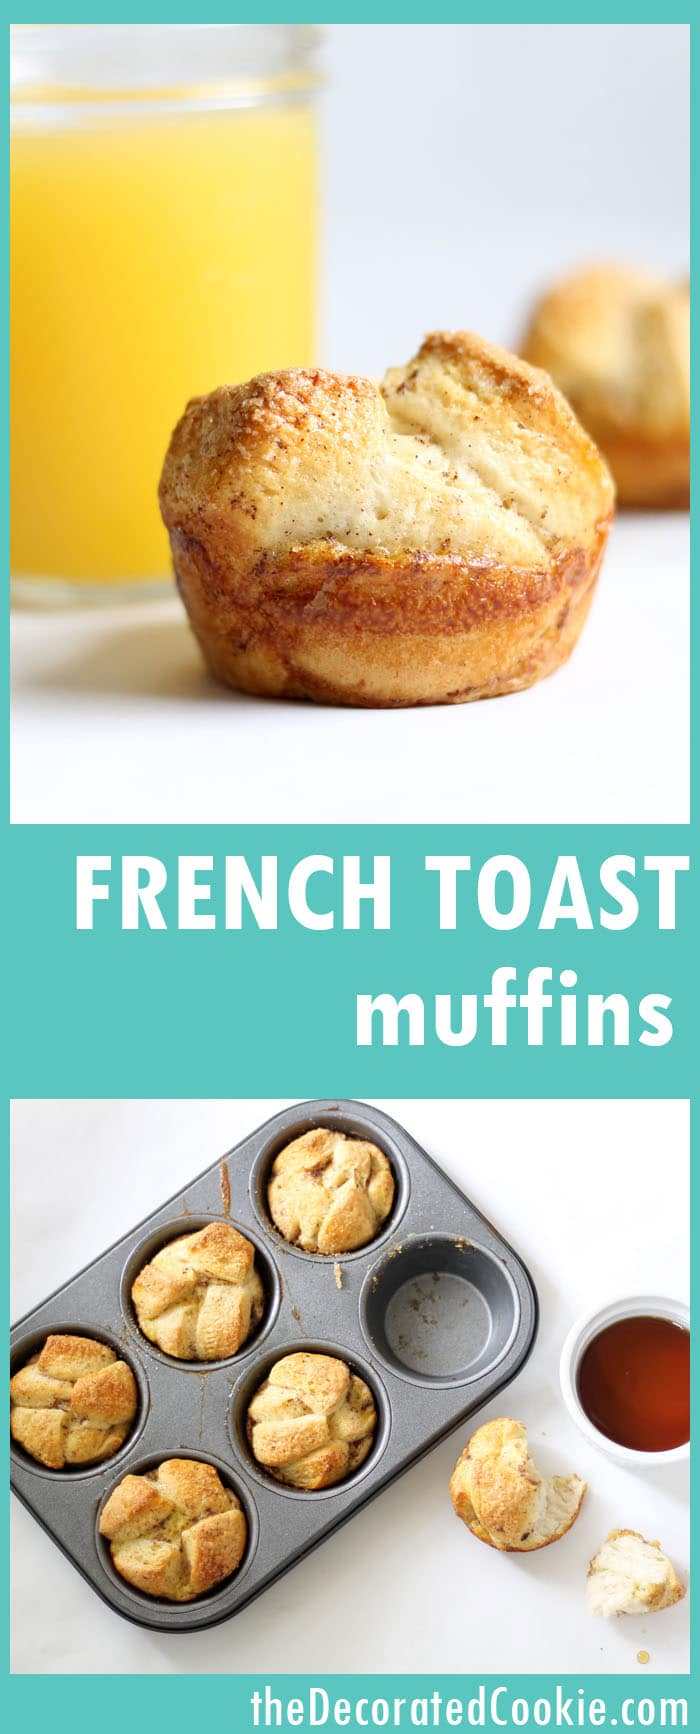 French Toast biscuit muffins -- with video how-tos